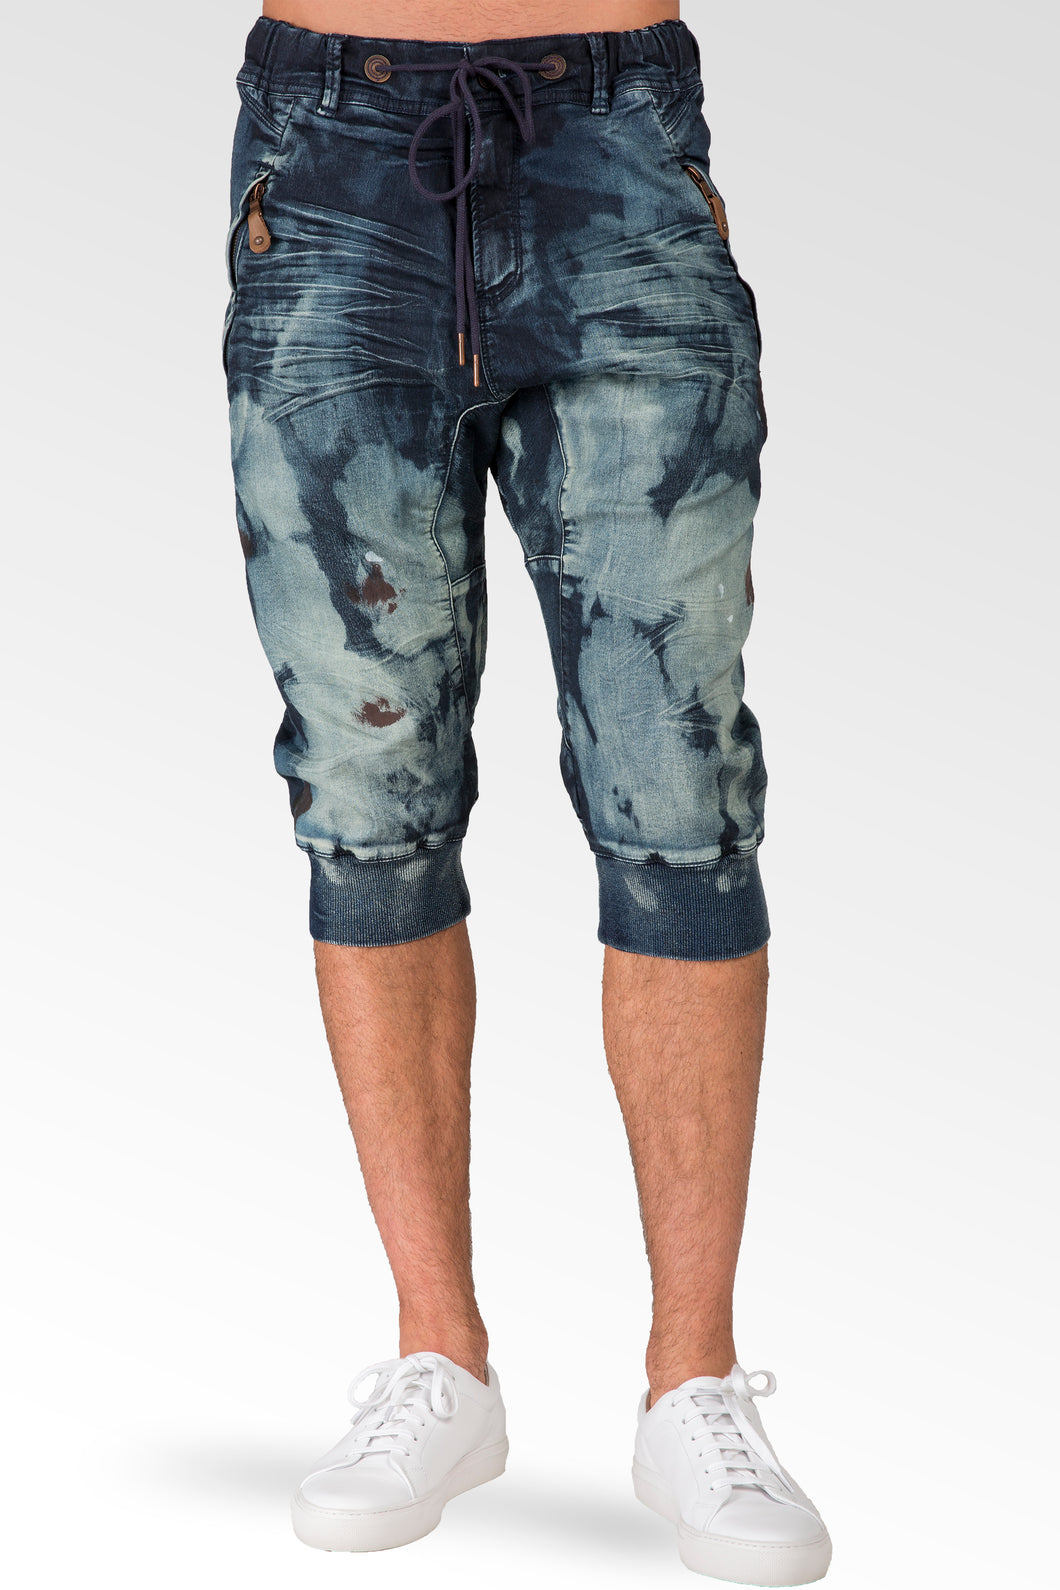 Dark Blue Clouded Wash Premium Knit Denim Jogger Capri Short, Rib Bottom 3D Whiskering 18